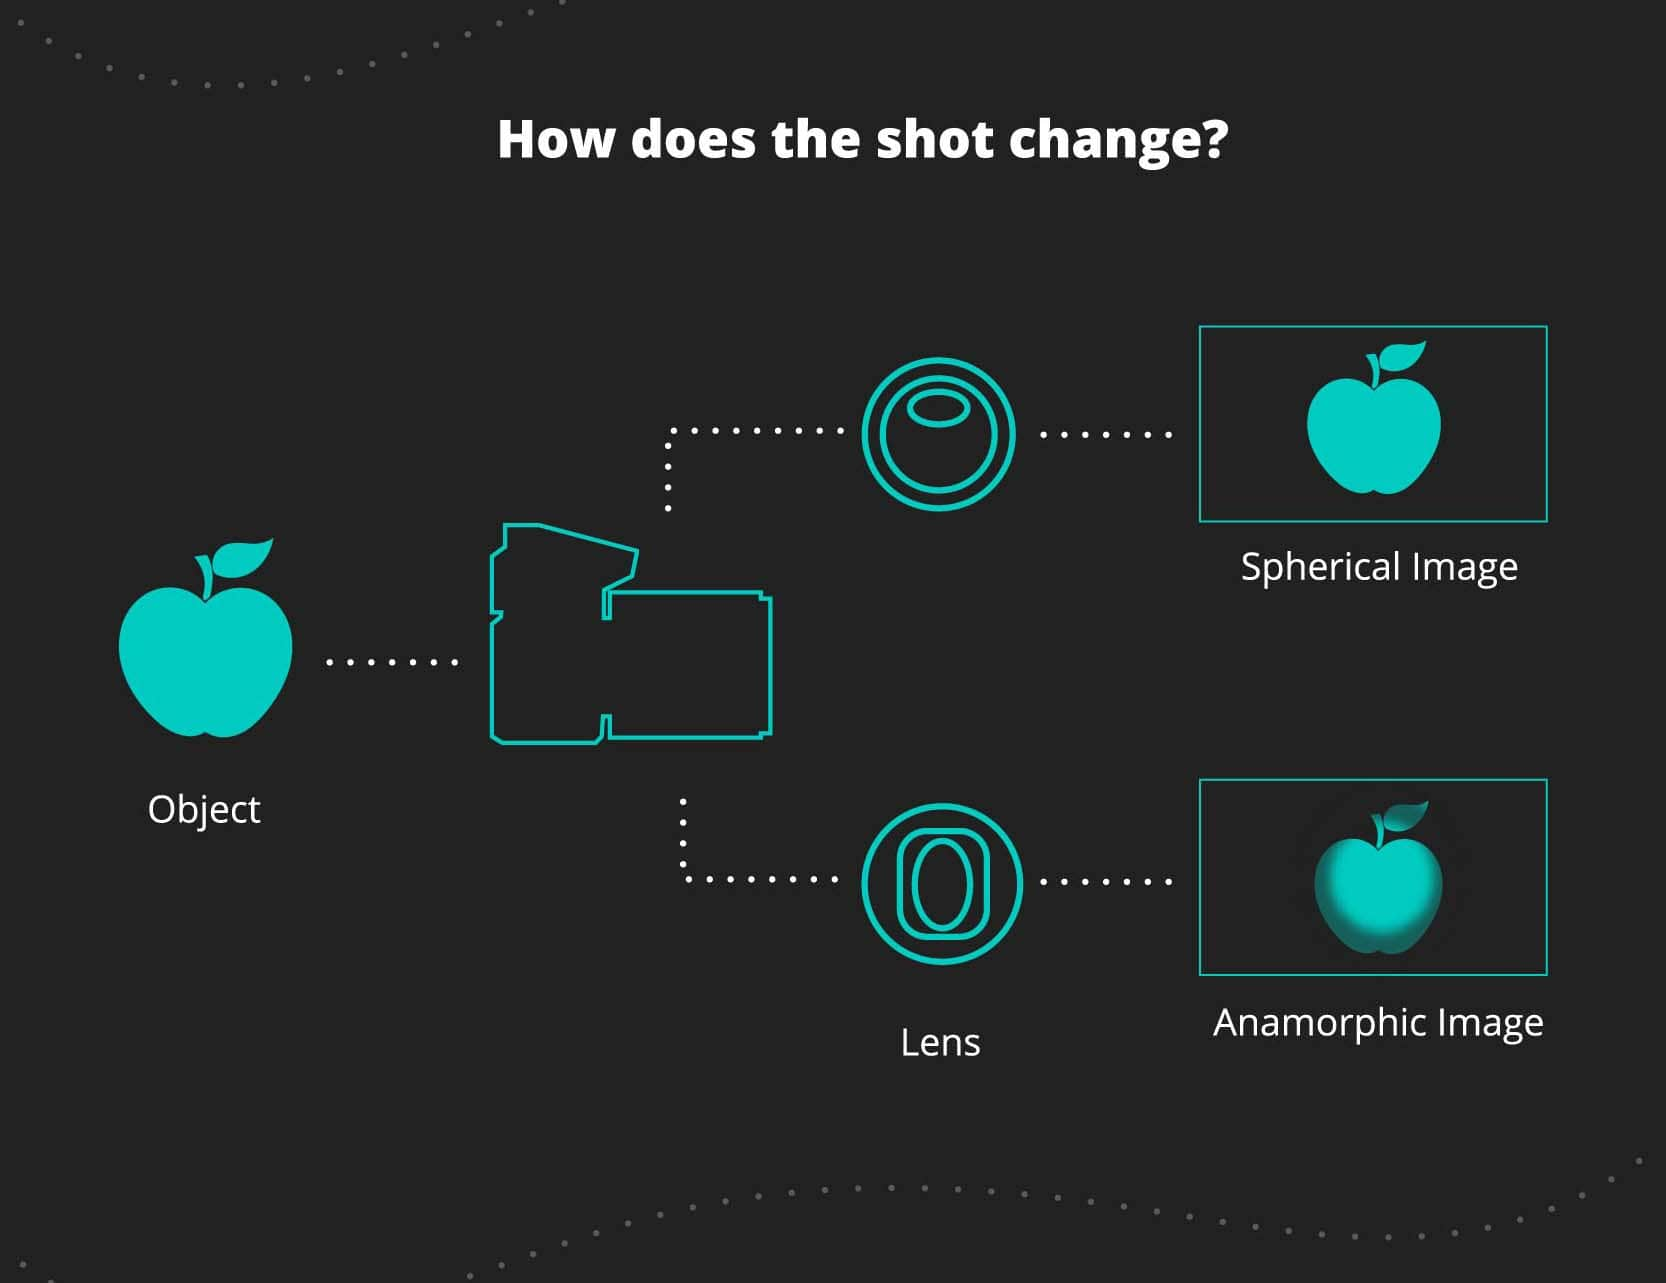 How does the shot change? Anamorphic and spherical lens